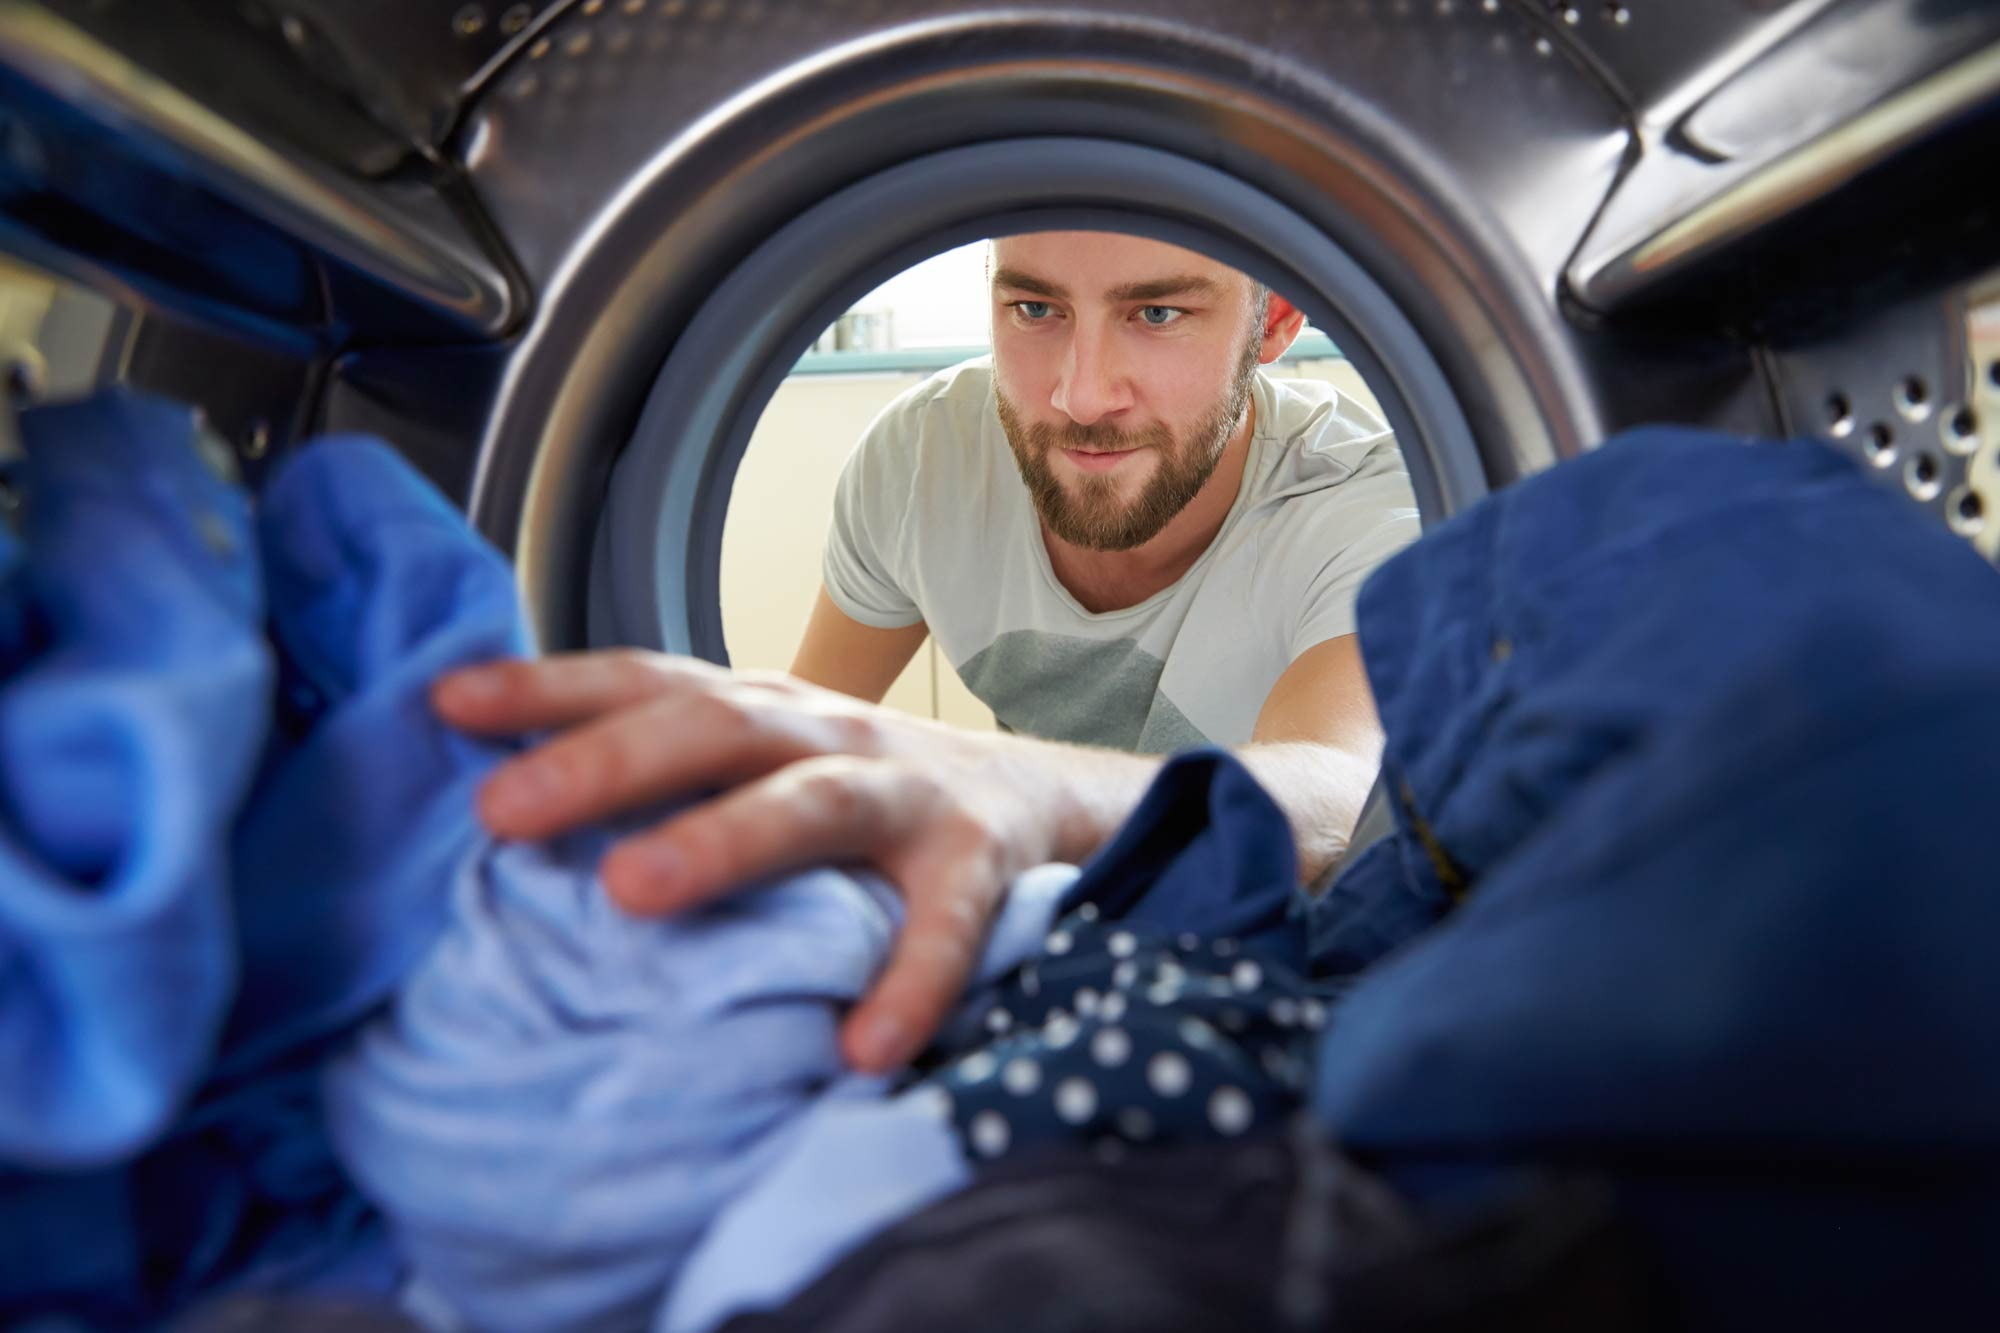 Person grabbing clothes from dryer